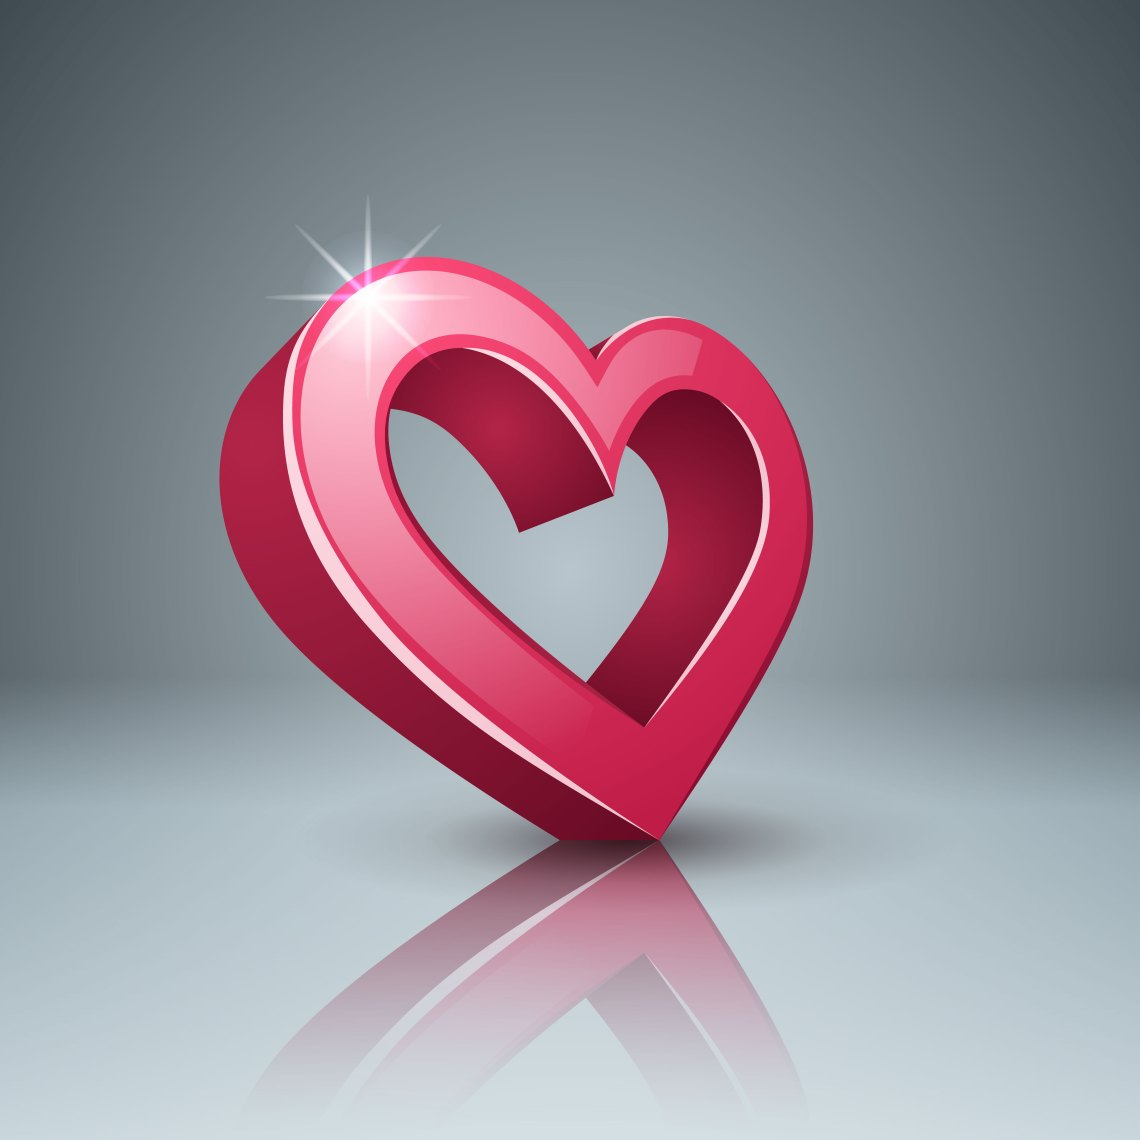 Download Realistic 3d icon. Heart and love. - Download Free Vectors ...